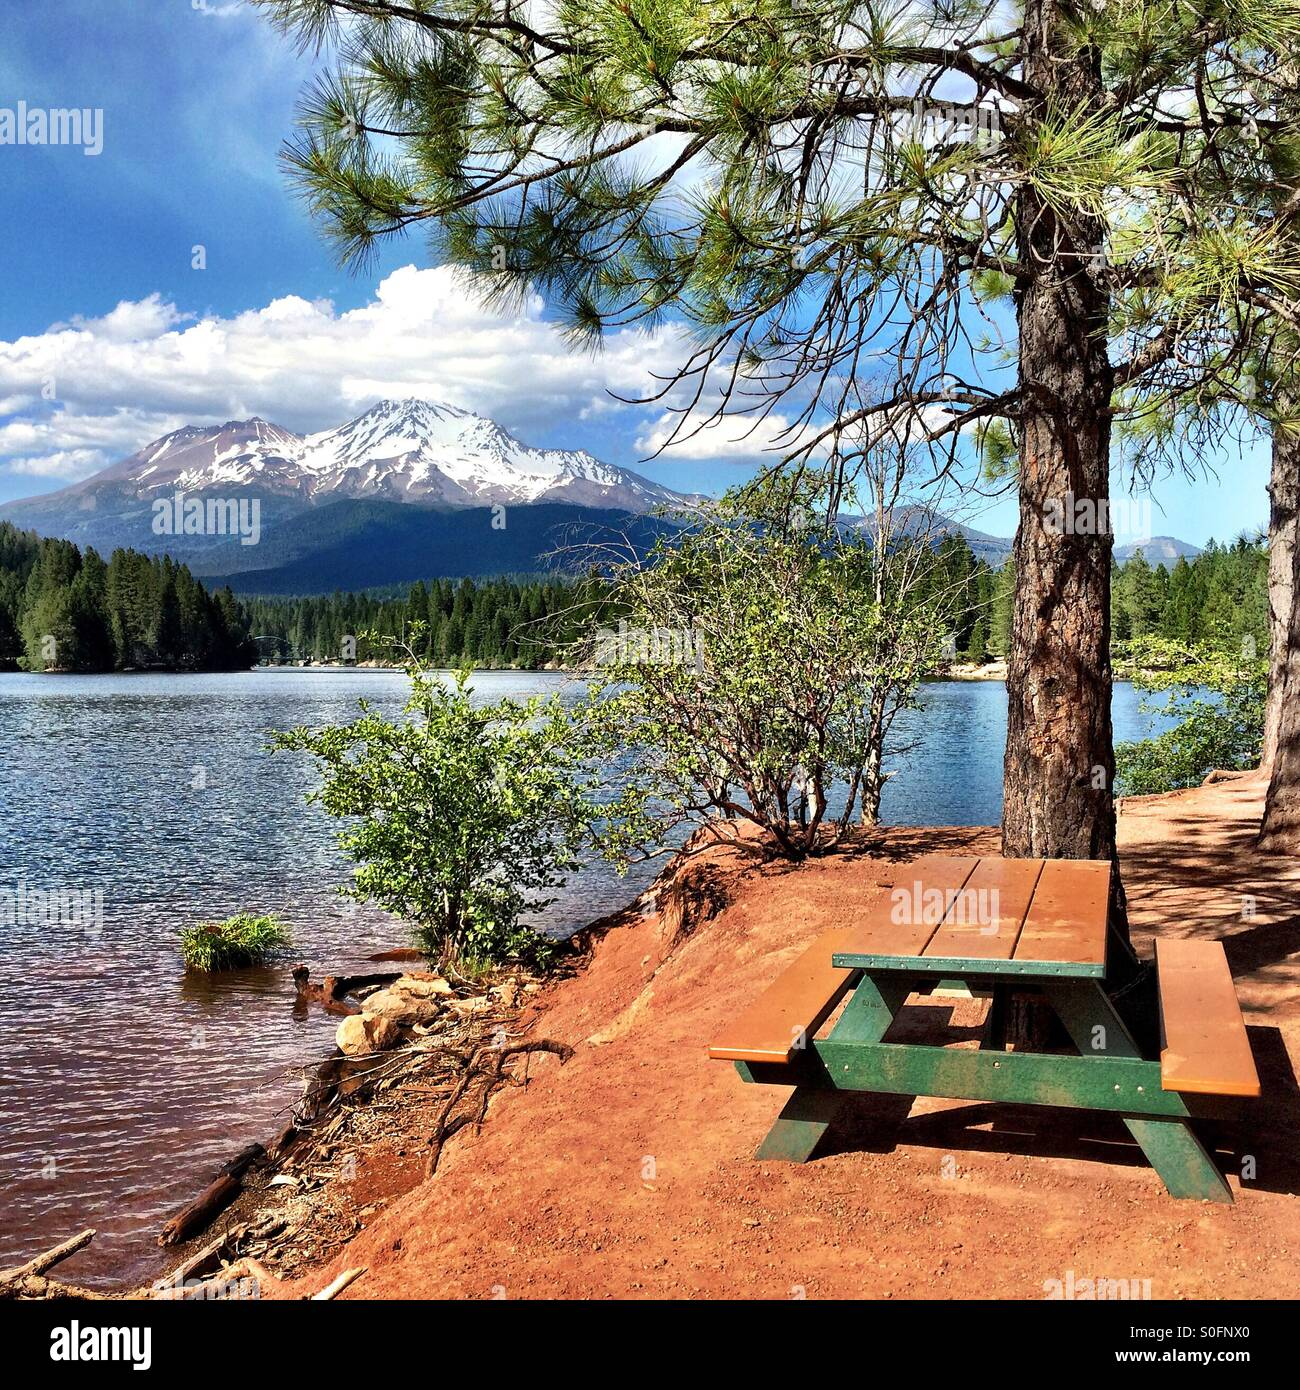 A picnic with Mount Shasta - Stock Image